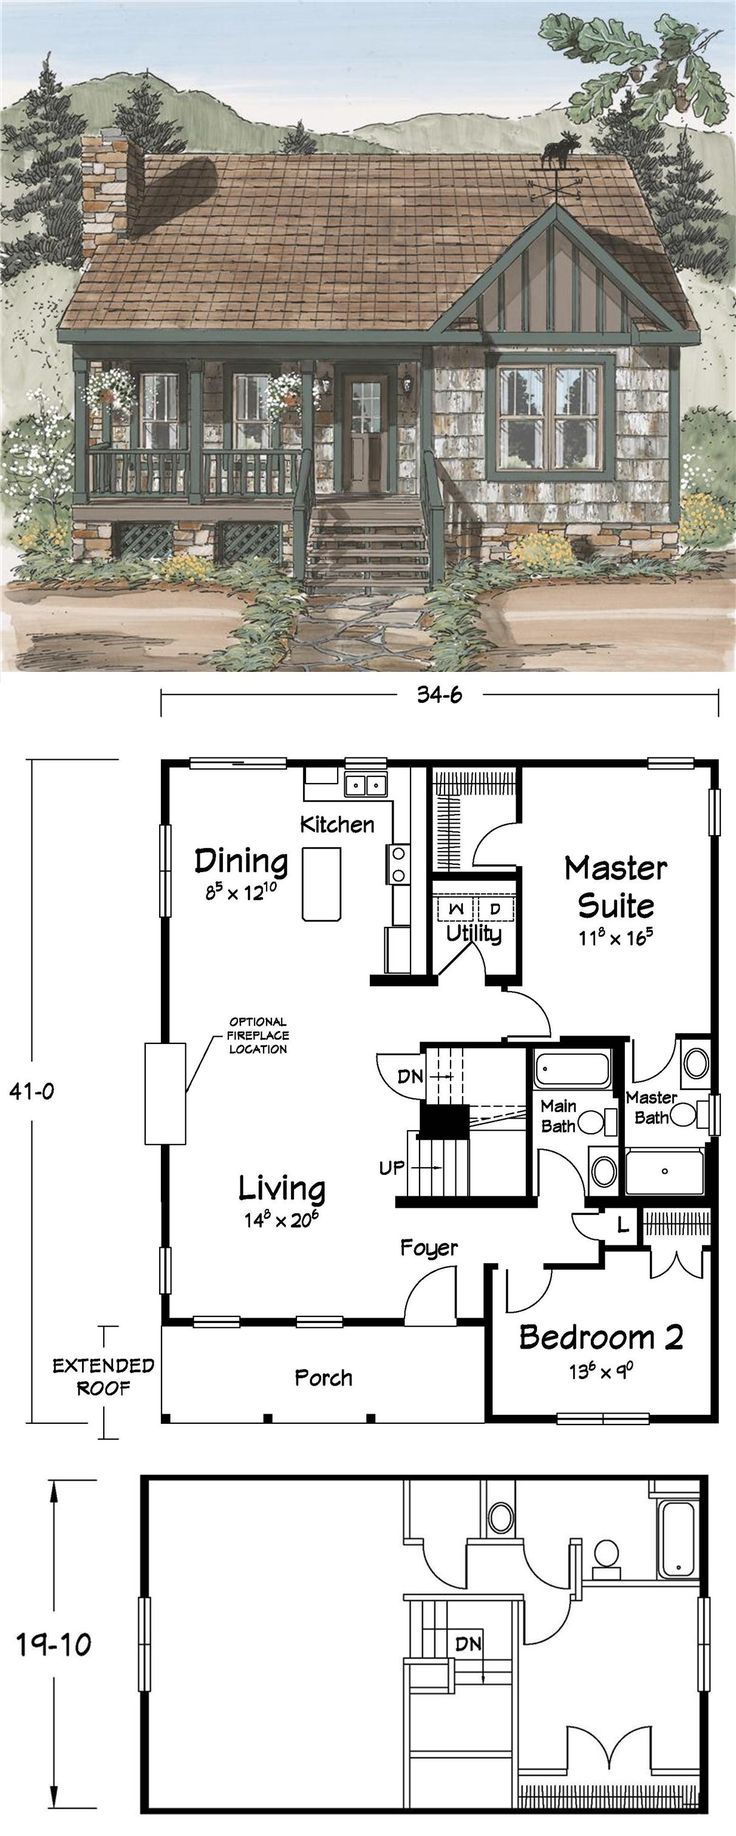 Cute floor plans tiny homes pinterest cabin small Compact house plans